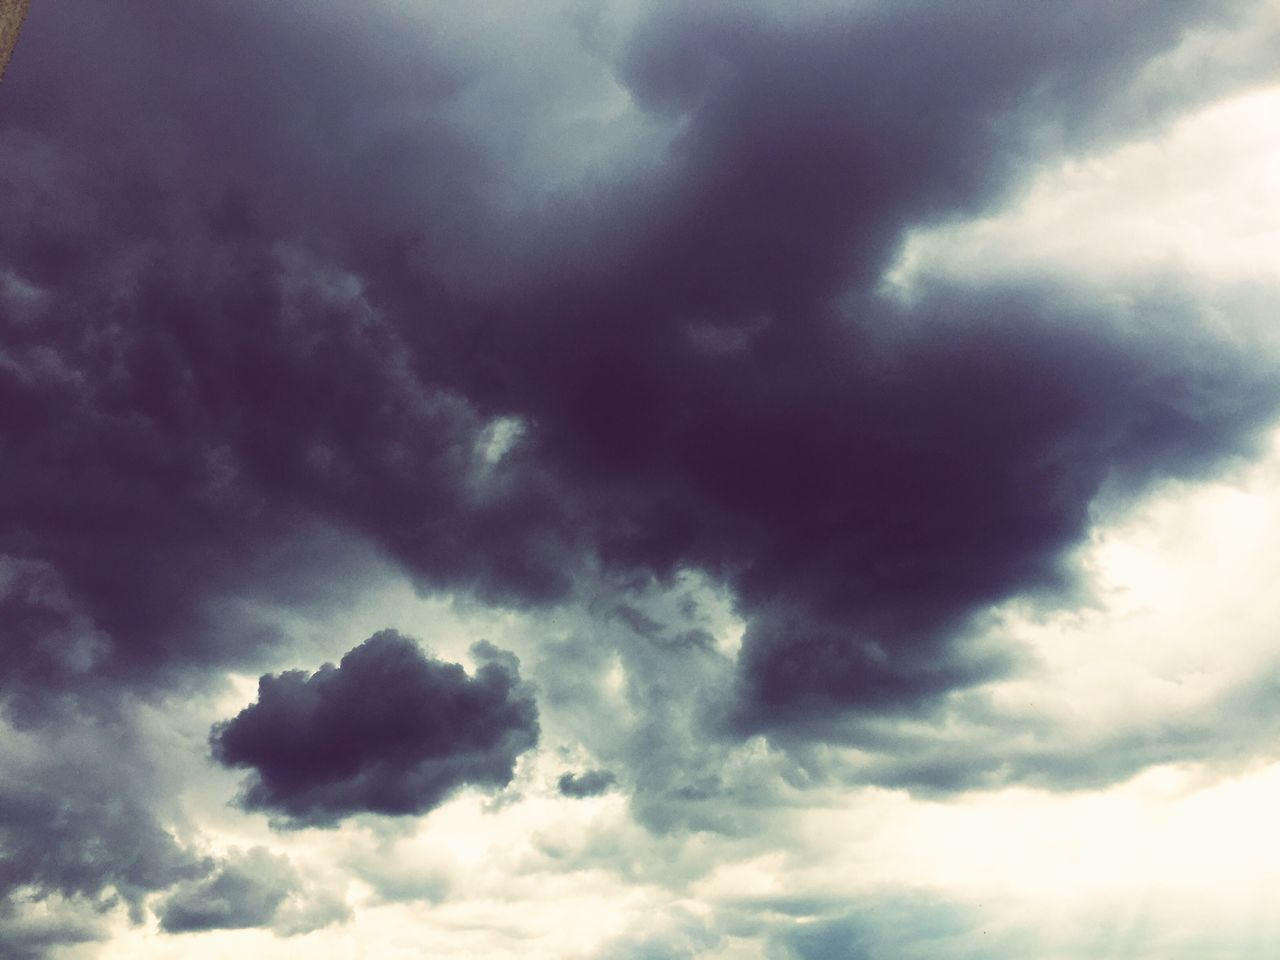 cloud - sky, nature, beauty in nature, low angle view, sky only, weather, sky, cloudscape, scenics, backgrounds, atmospheric mood, dramatic sky, majestic, tranquility, no people, storm cloud, idyllic, tranquil scene, outdoors, awe, day, full frame